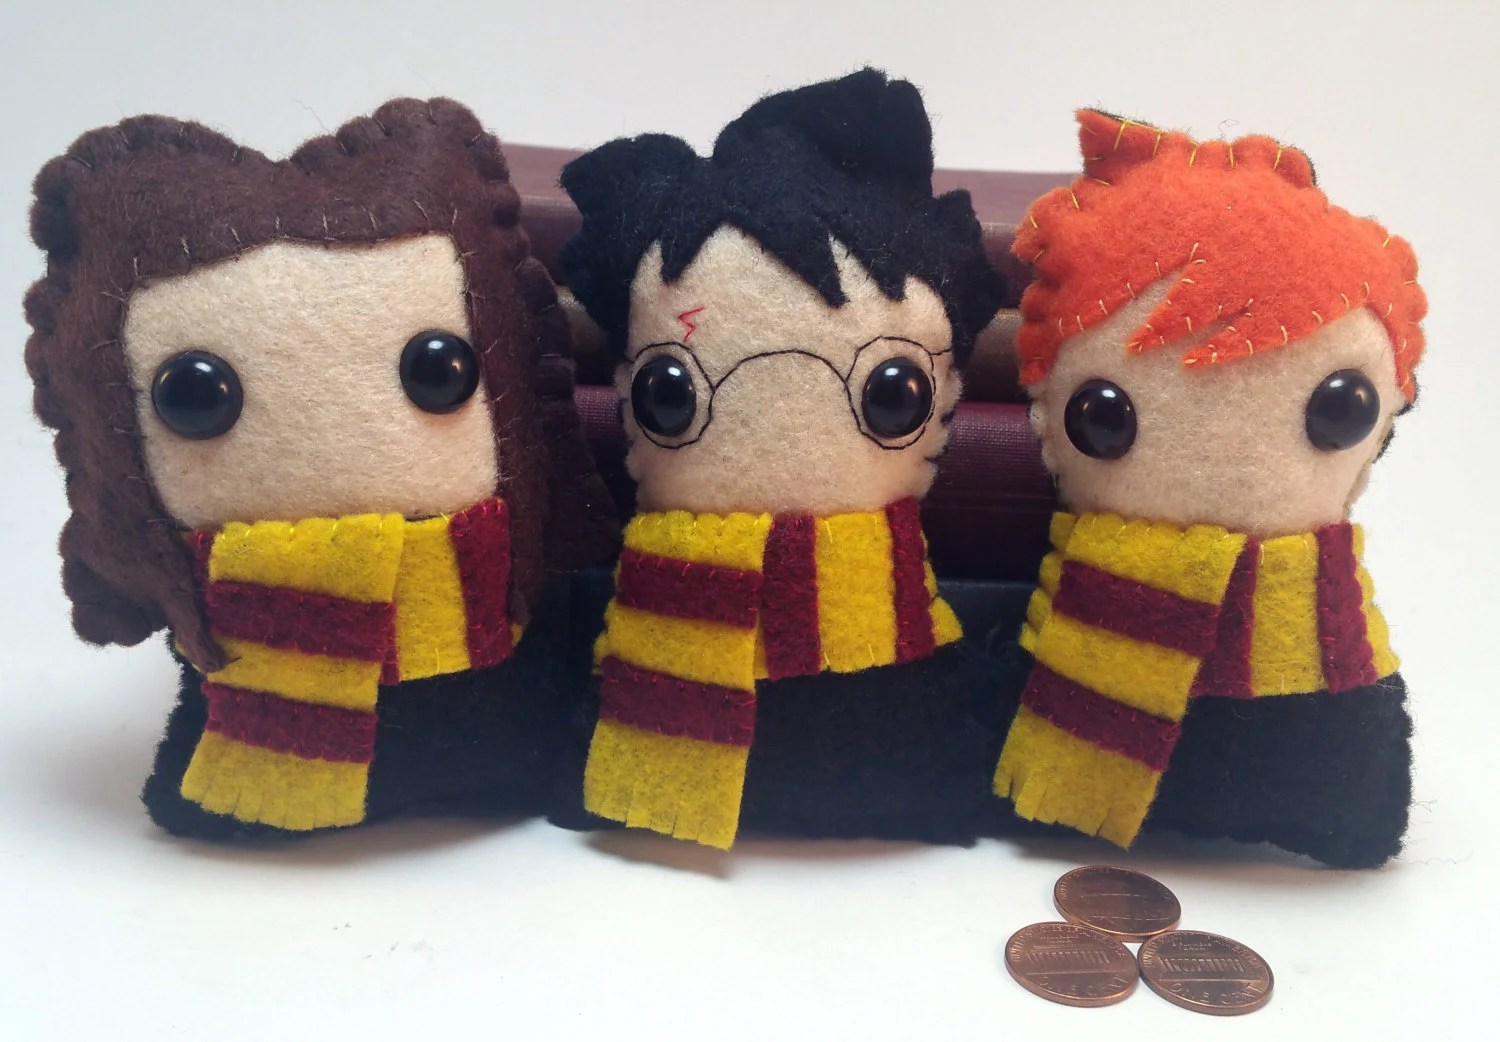 Harry Potter Hogwarts plu...